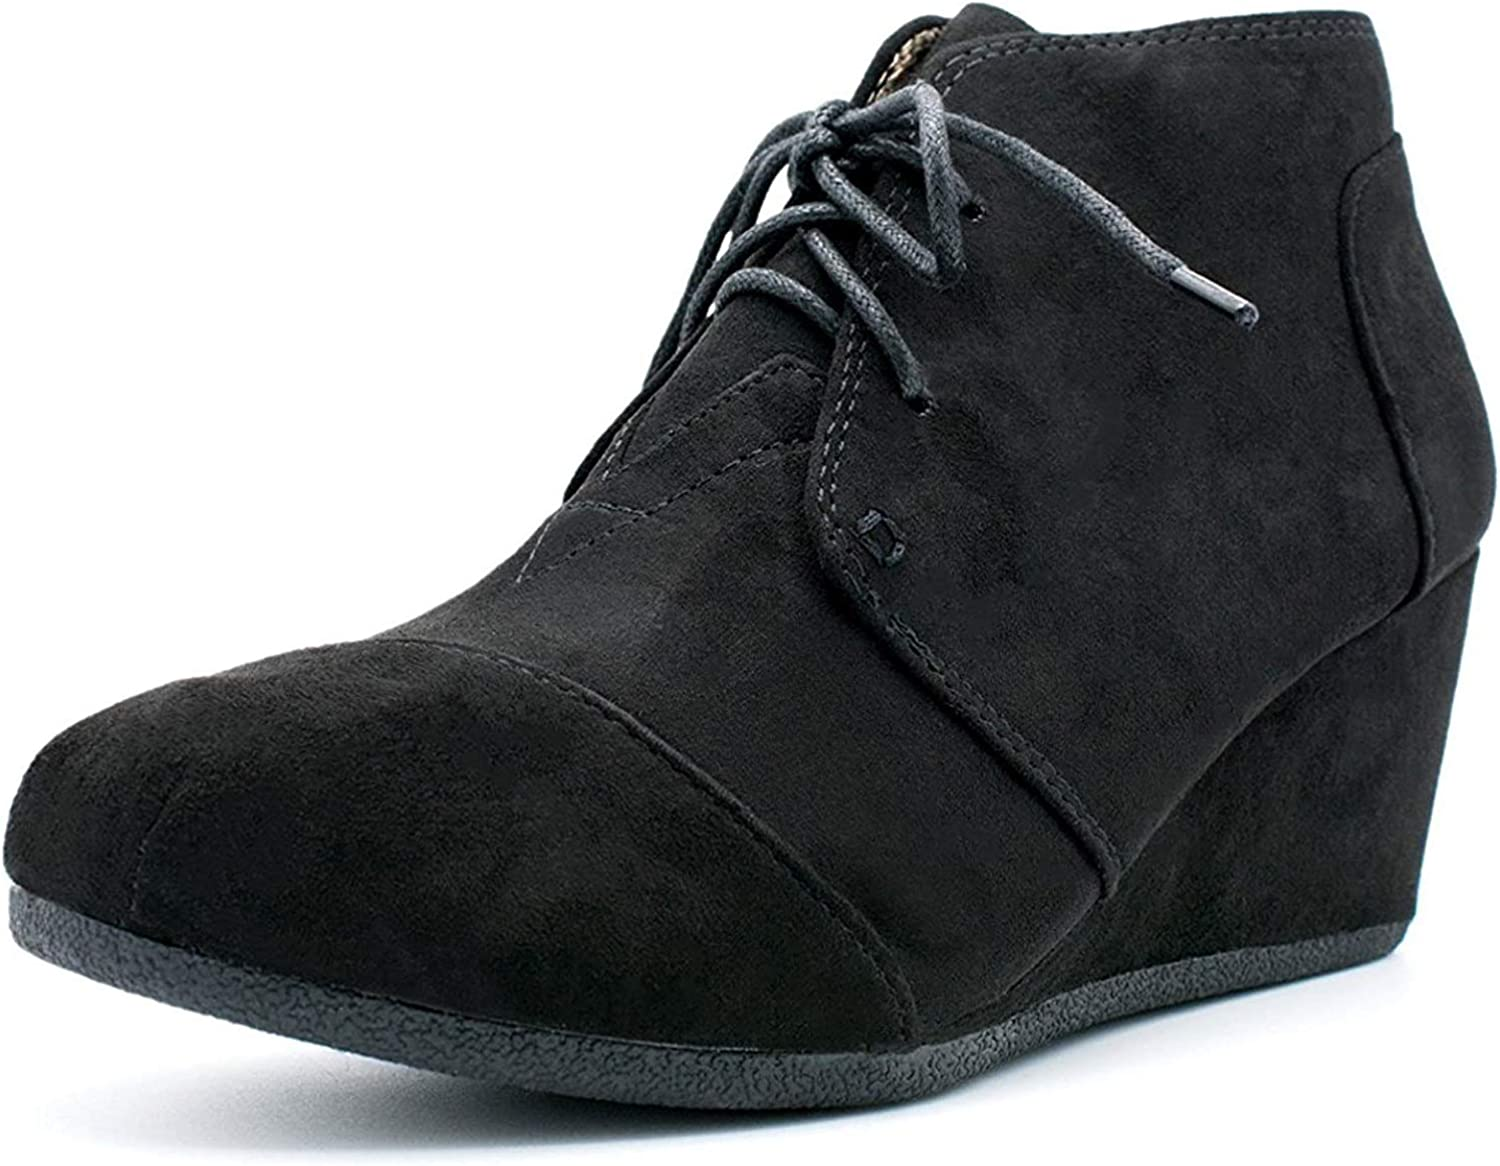 Top Moda Forever Link Womens Patricia-01 Lace Up Faux Suede Ankle Wedge Booties,9 B(M) US,Black